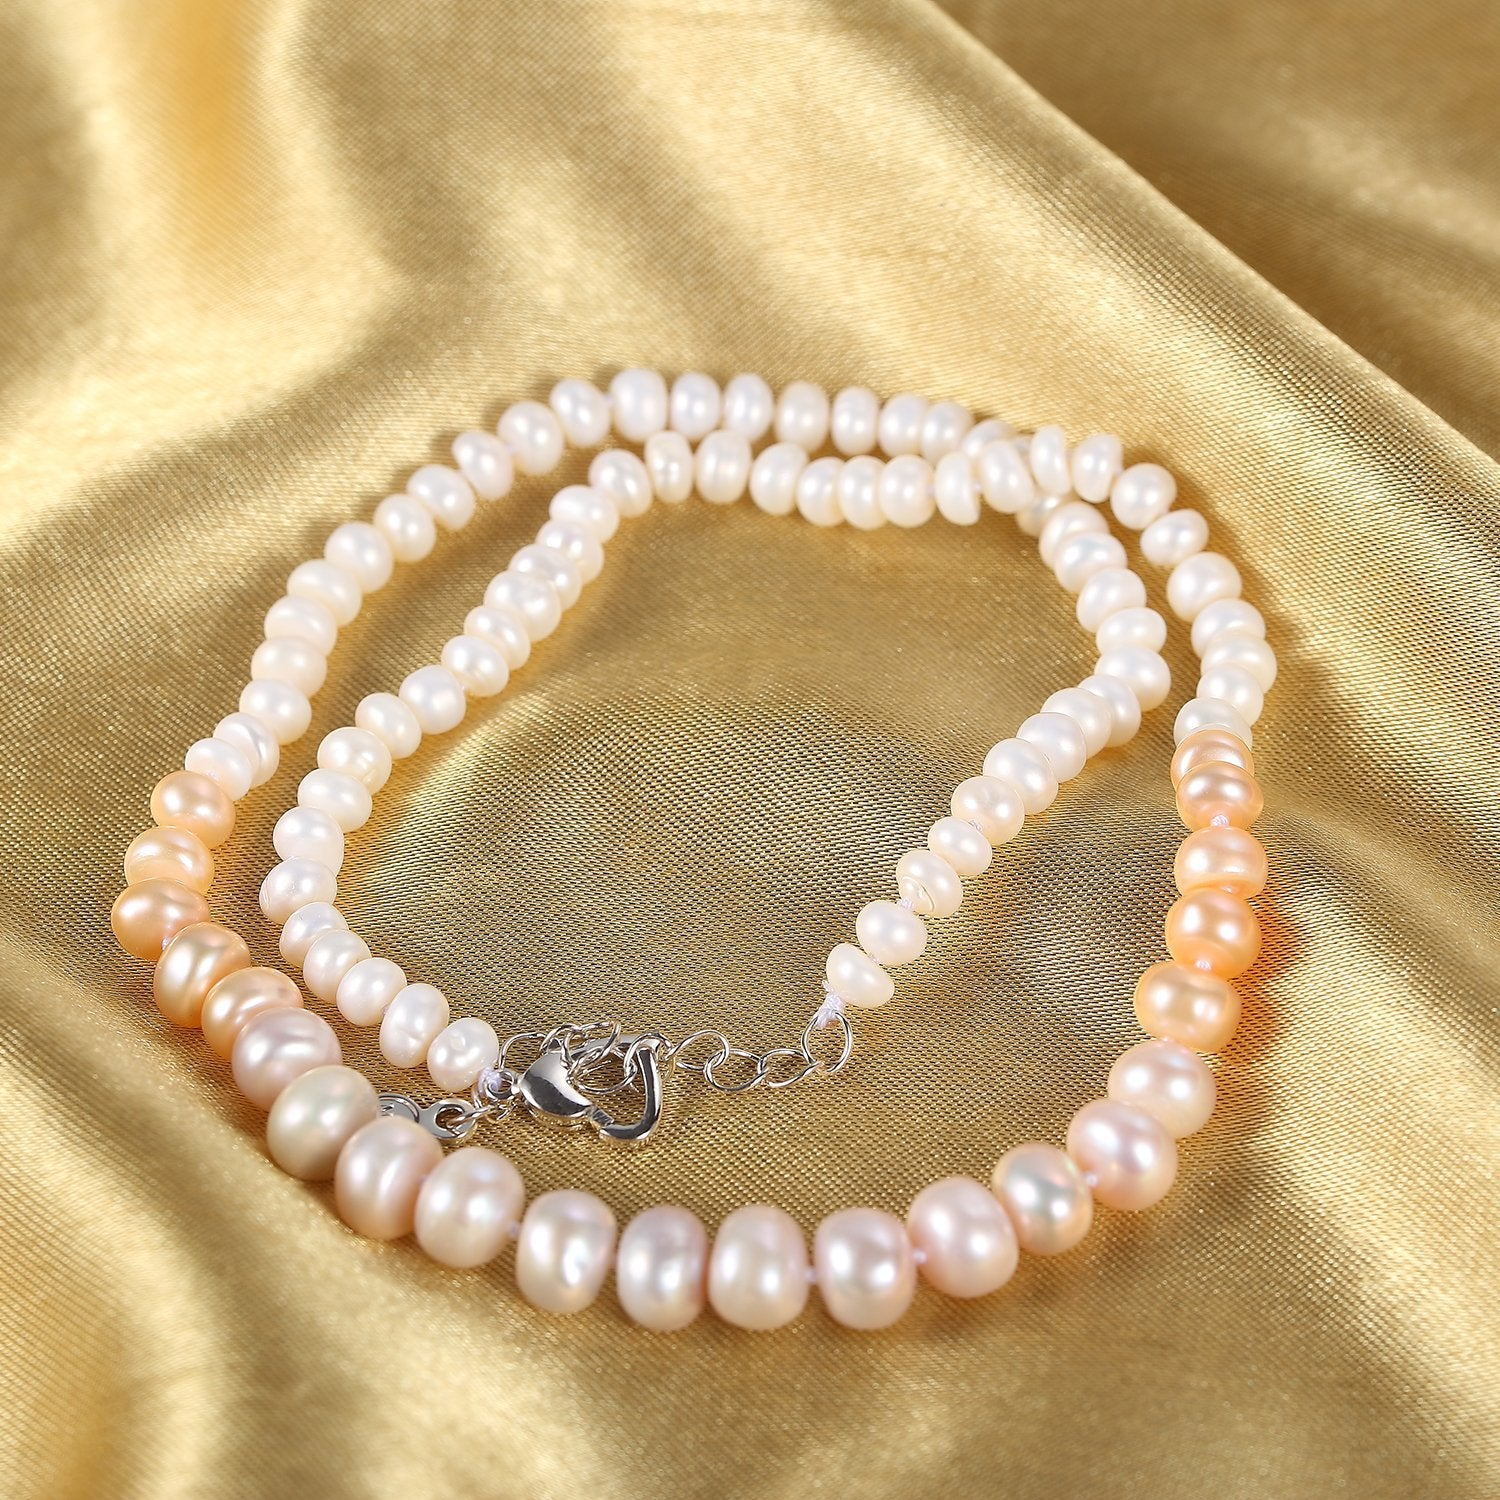 copy jose white pearl jewelry necklace balli atchafalaya picture of